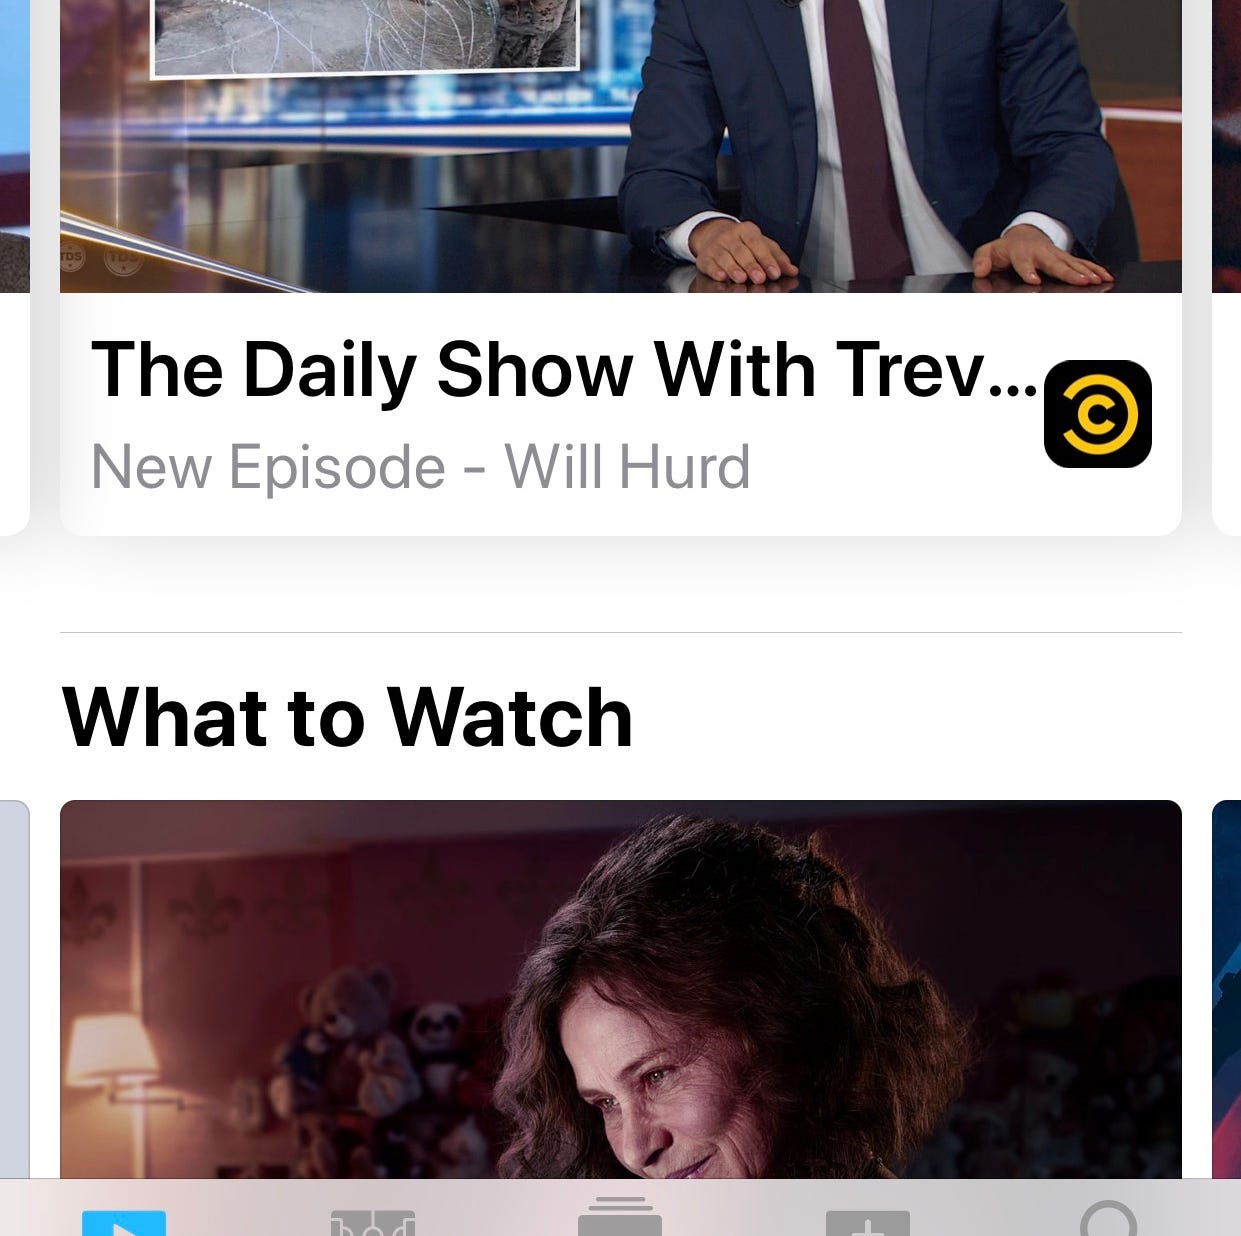 Apple's TV app offers suggestions of what to watch